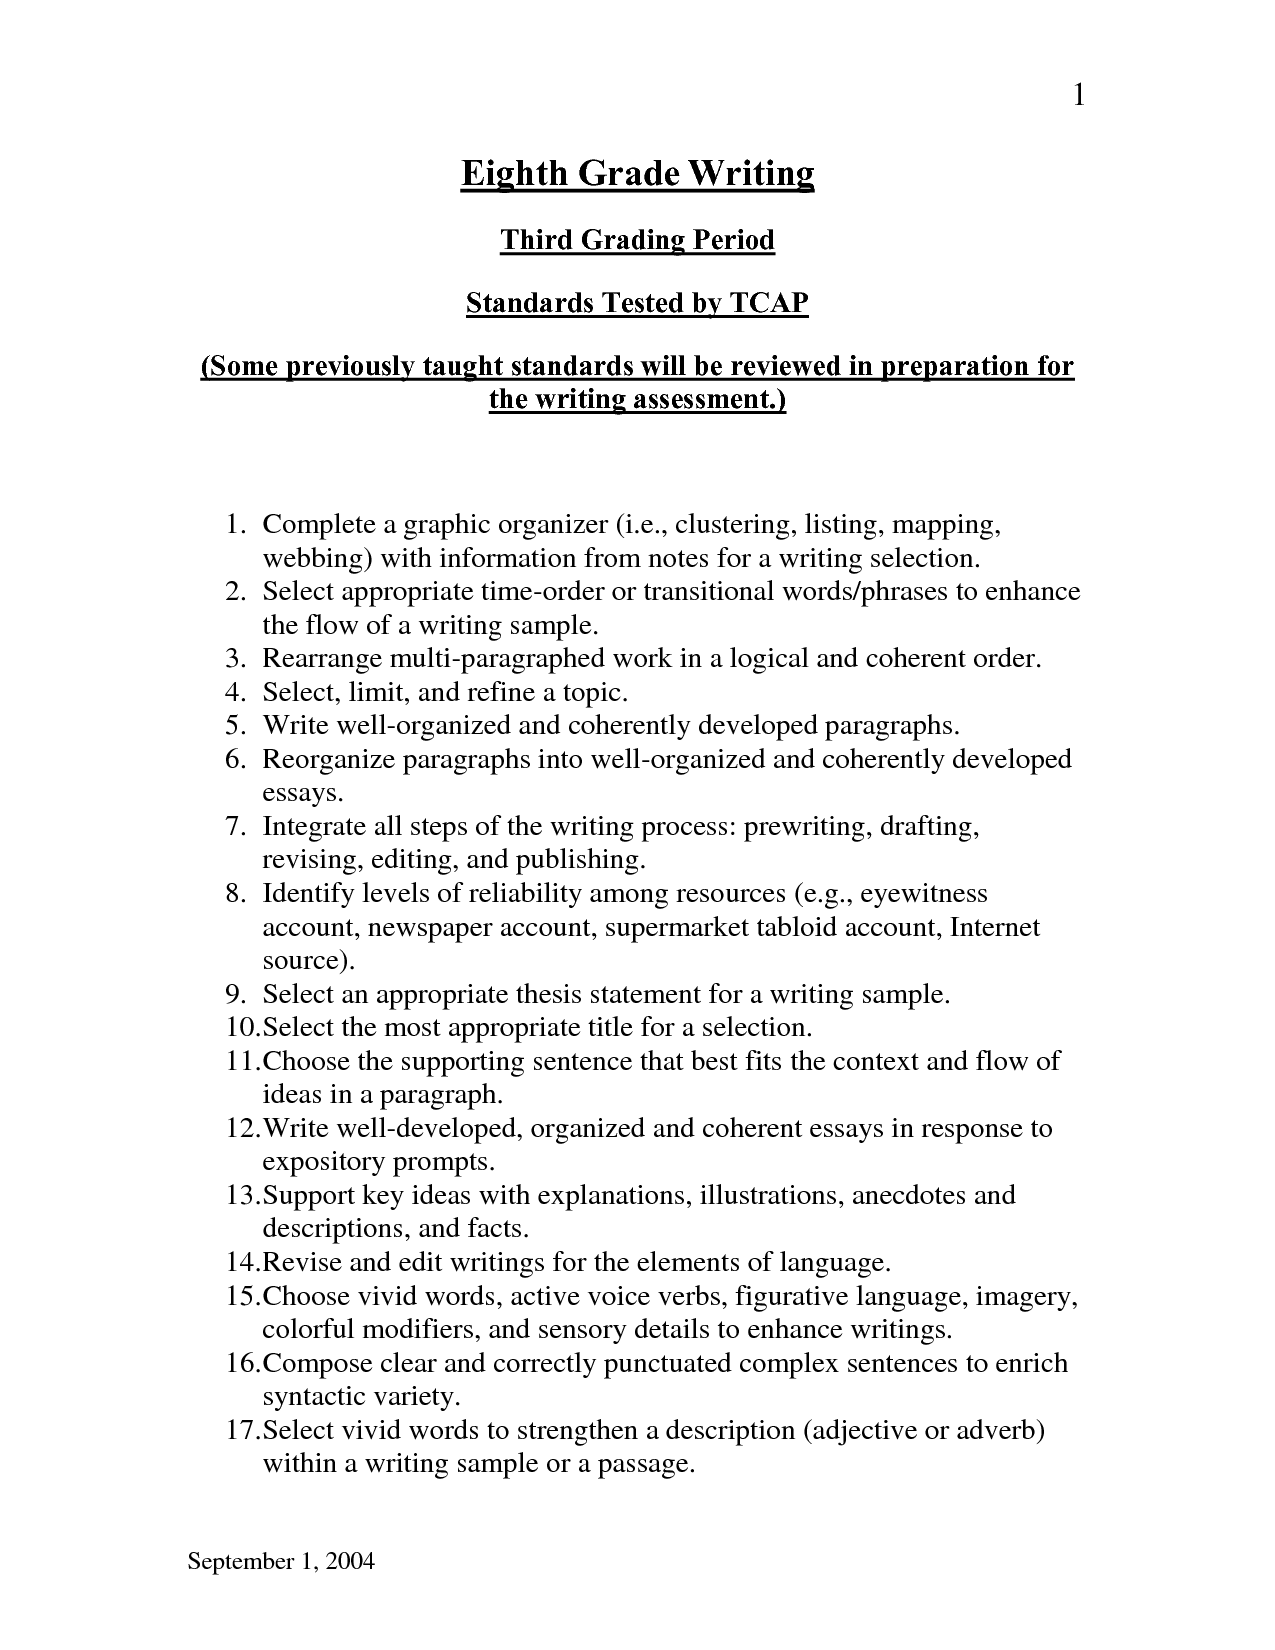 012 Essay Example What Is An Expository Writing Prompts For High School 1088622 Magnificent Gcu Examples 4th Grade Full